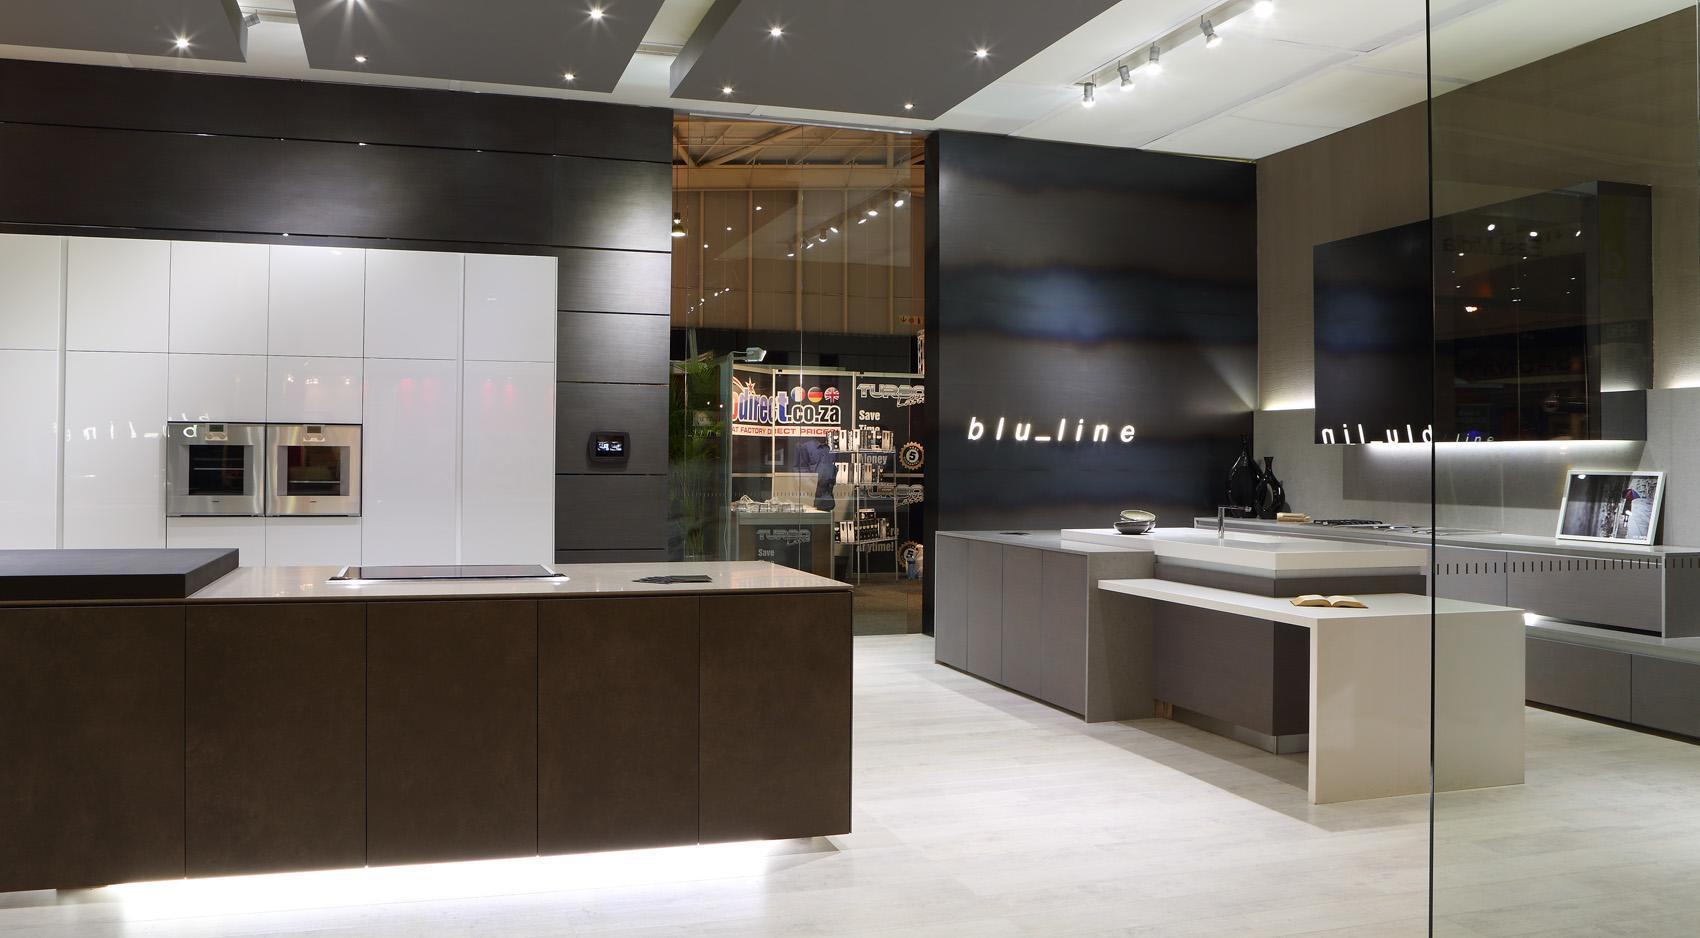 World class stand takes top honours at decorex joburg for Top kitchen designs 2012